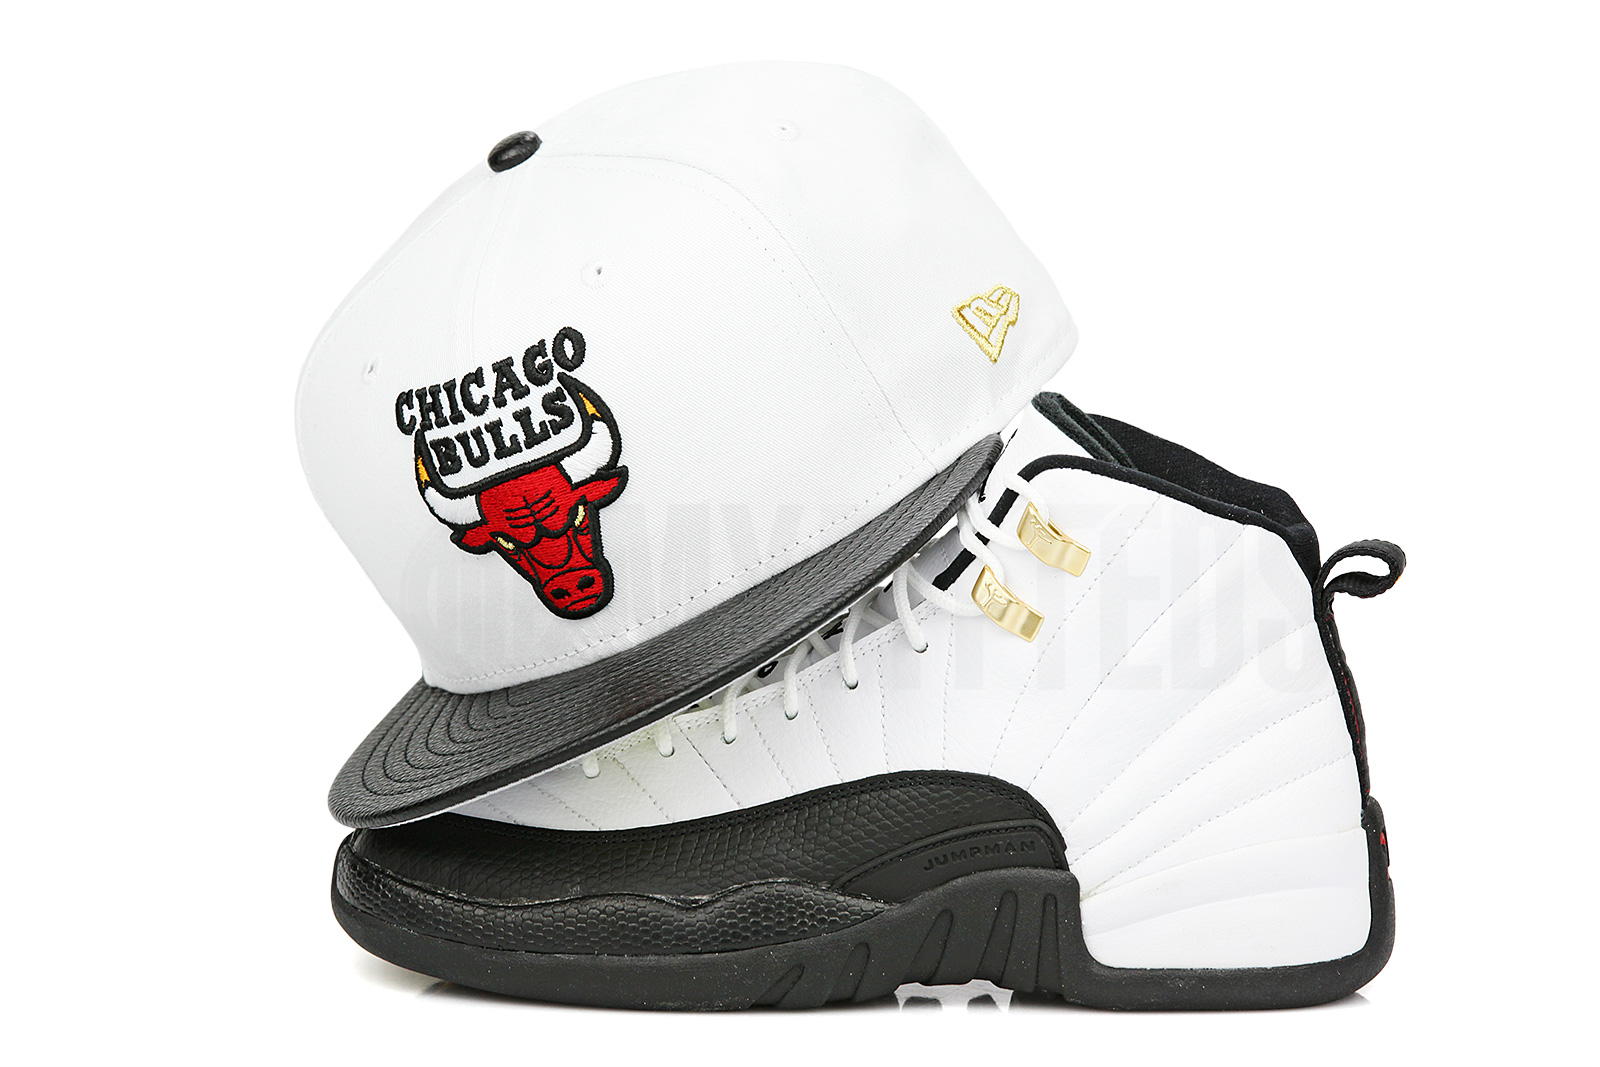 classic fit 88b2e ffffd ... low price match jordan retros new arrivals at myfitteds new era hats  nike sportswear air jordan